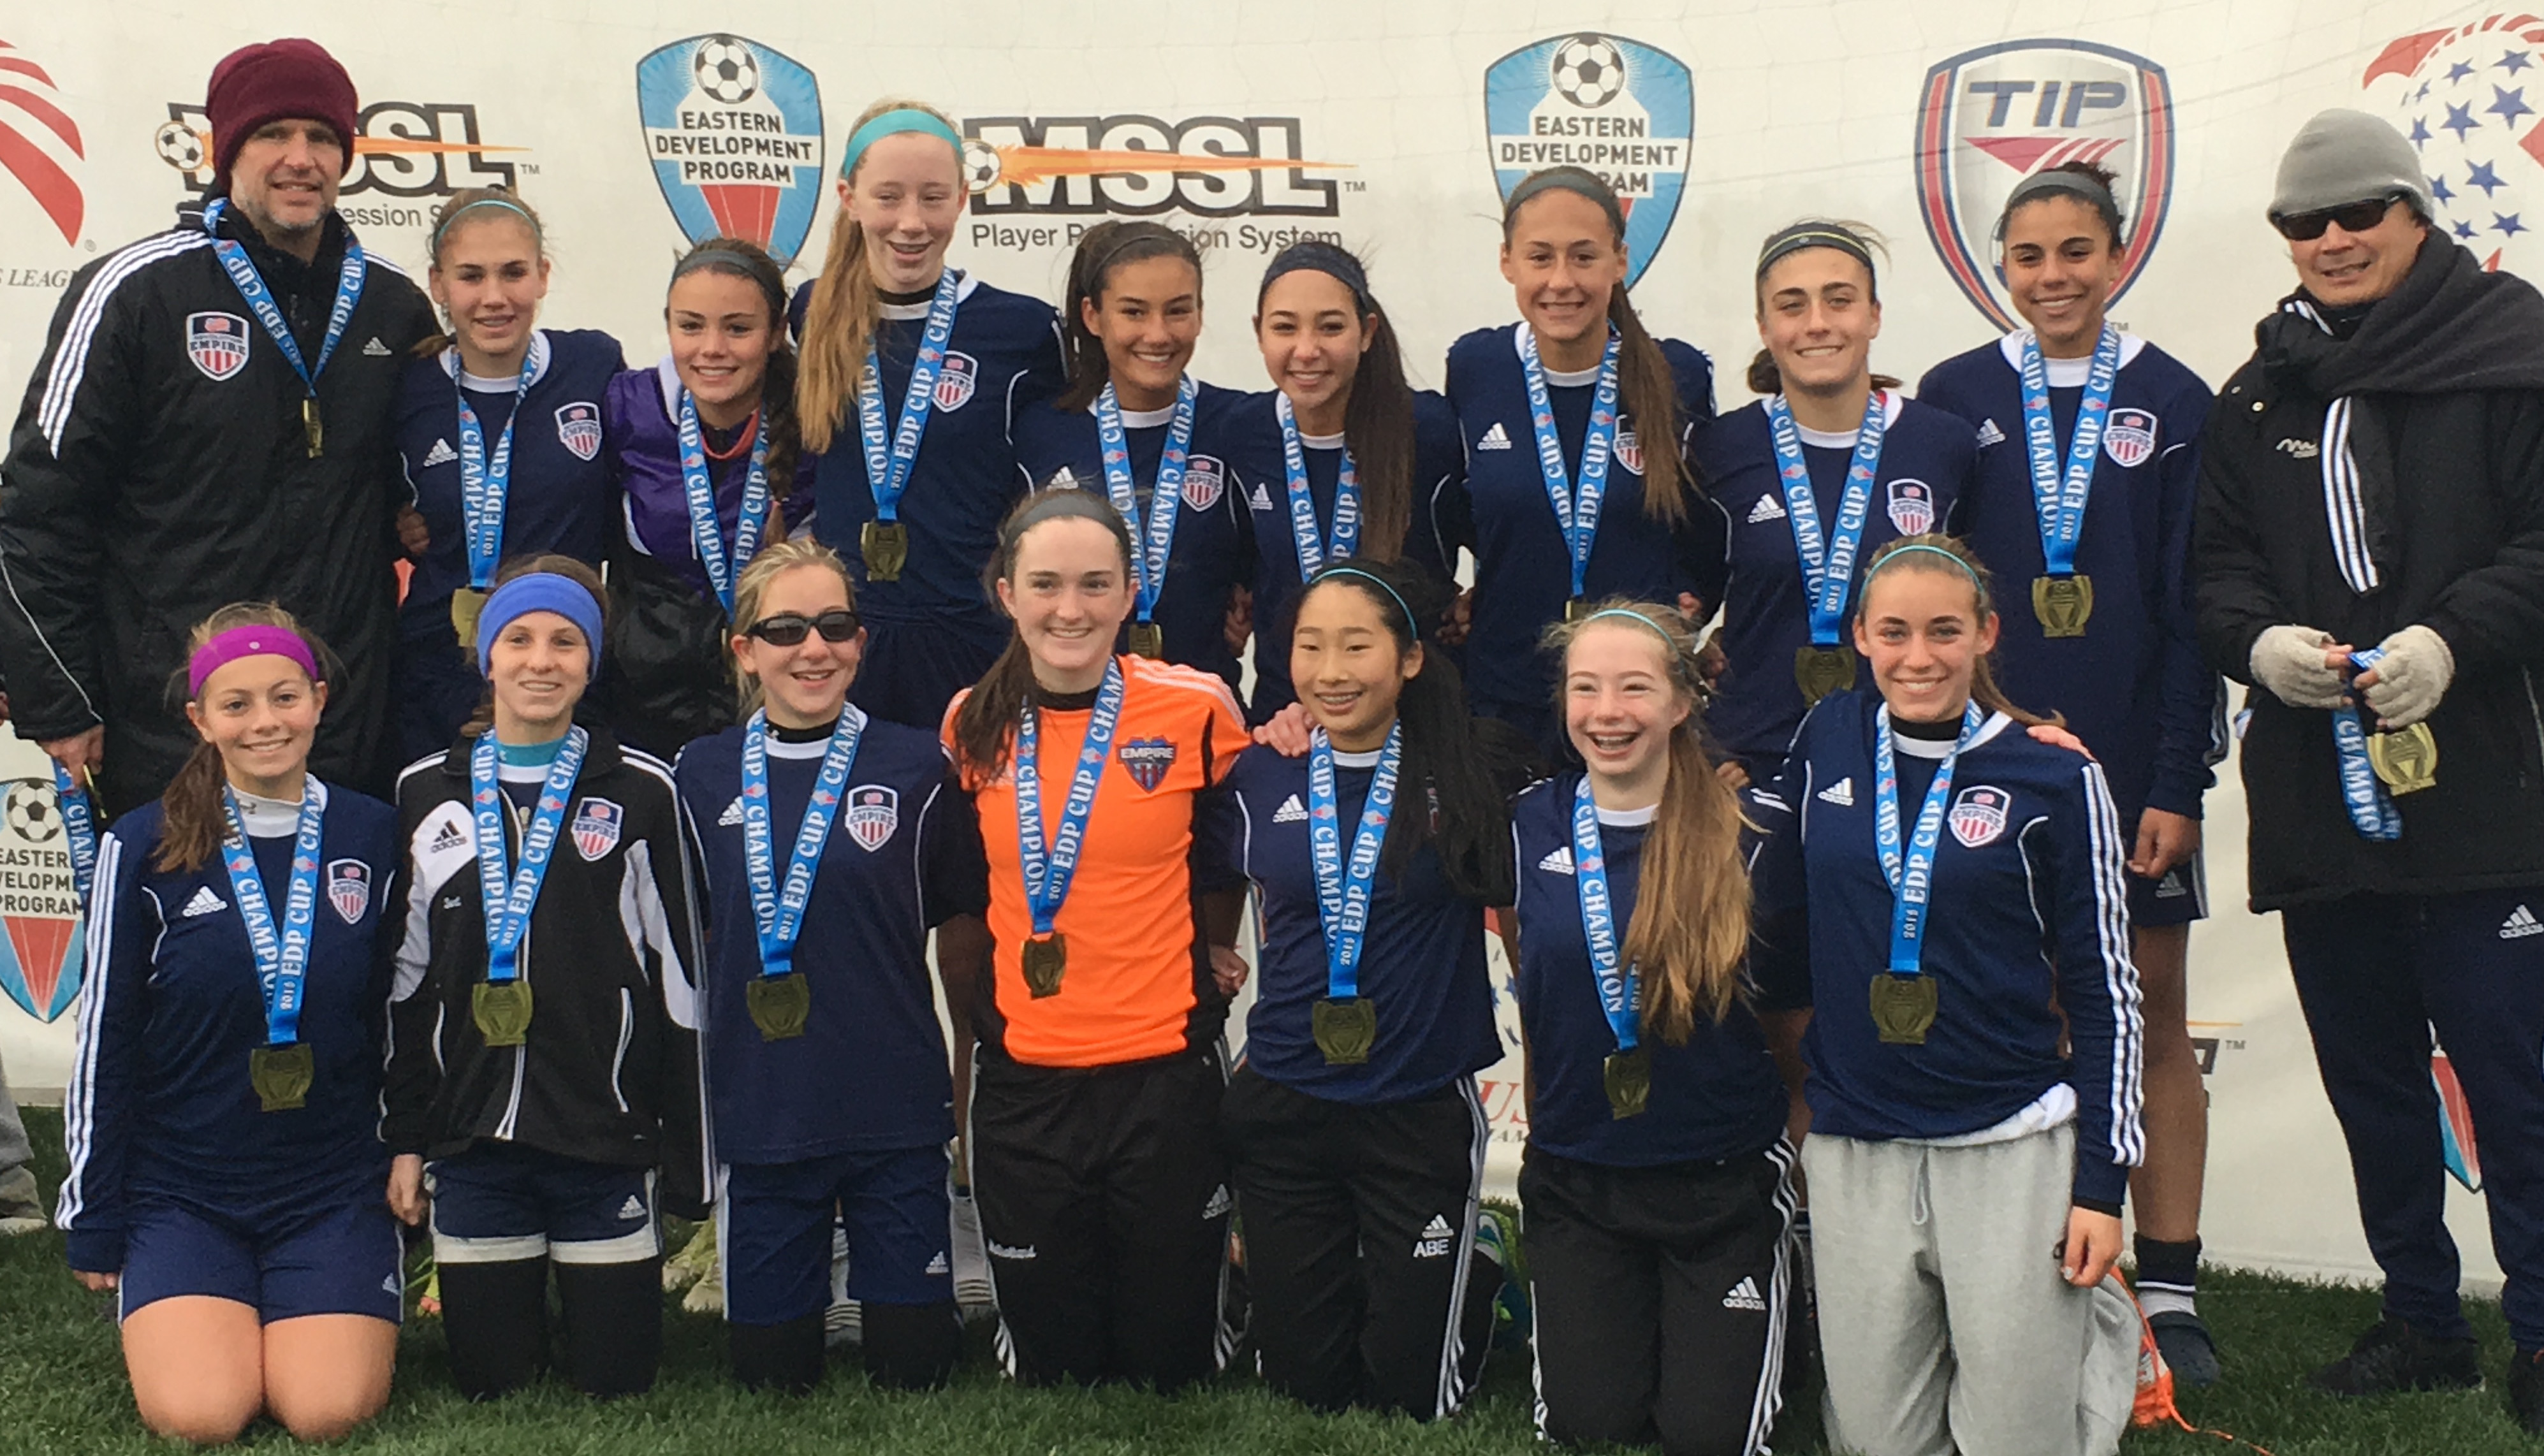 Rochester GU15's win at MSSL